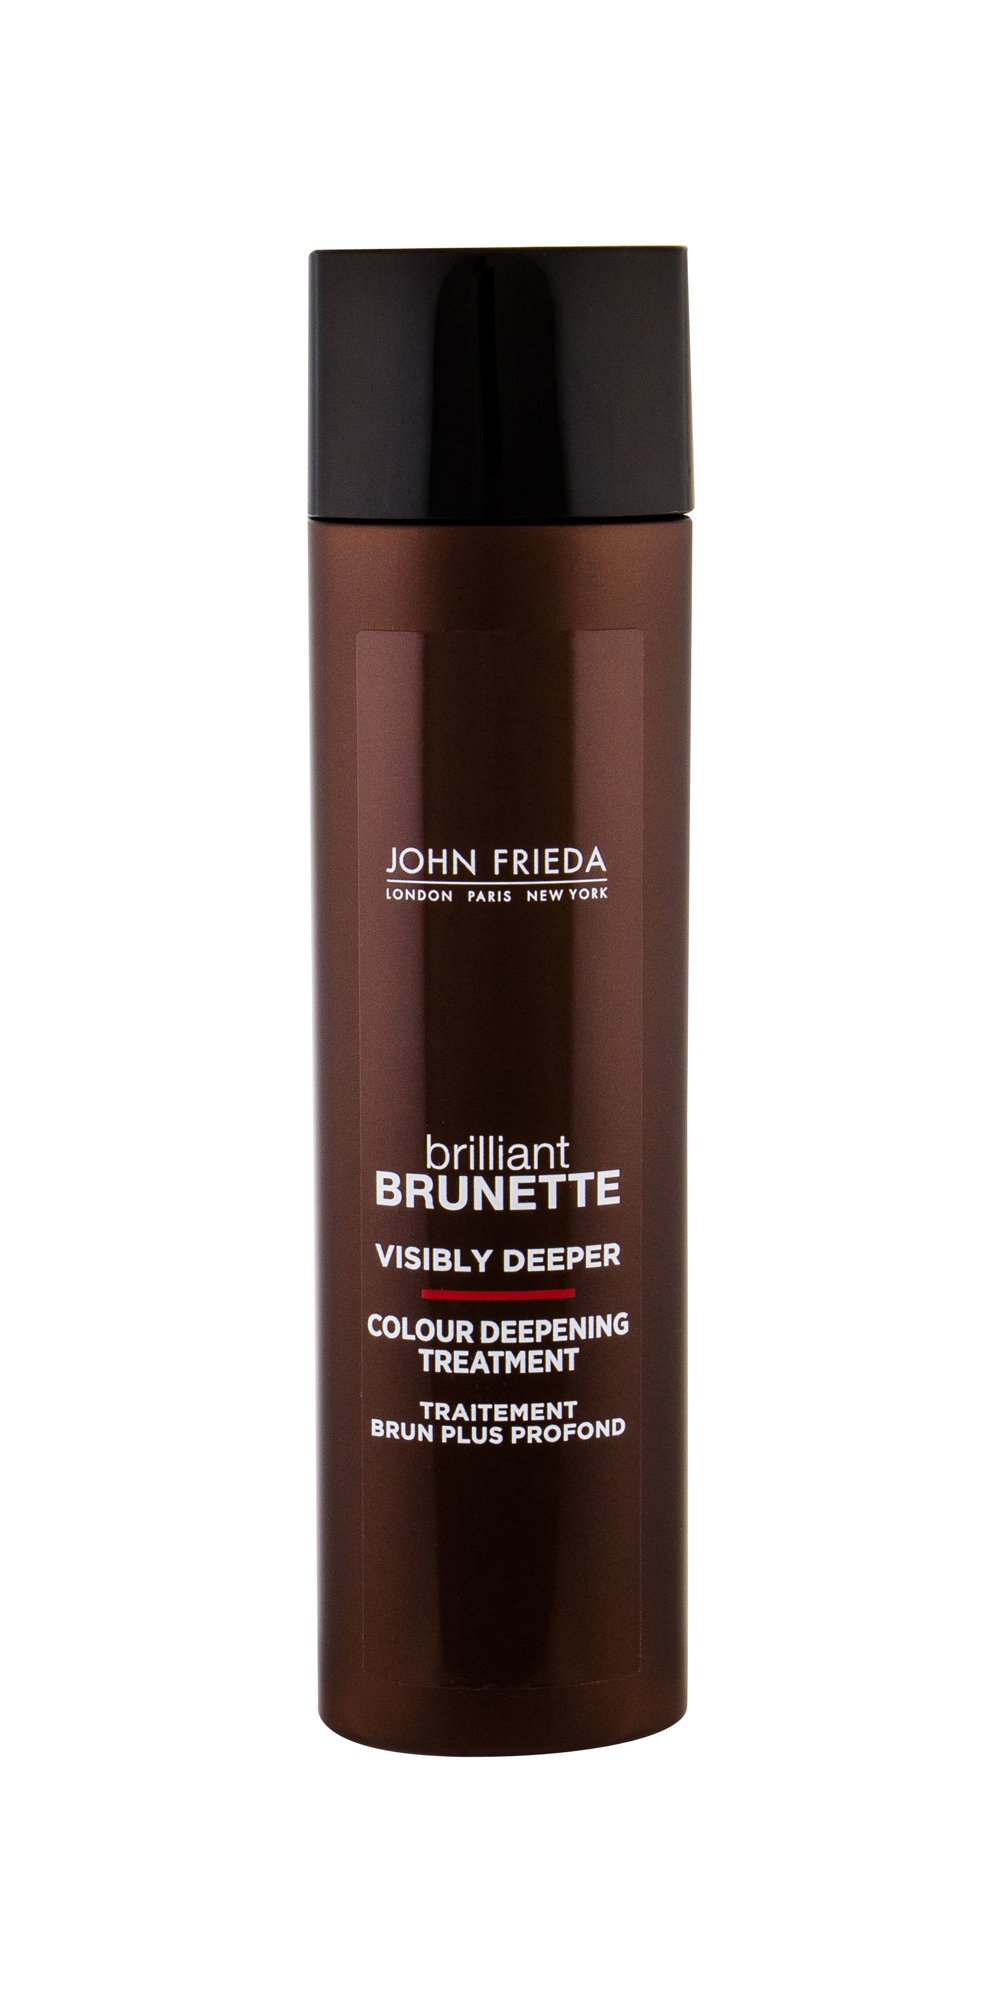 John Frieda Brilliant Brunette Hair Color 150ml  Visibly Deeper